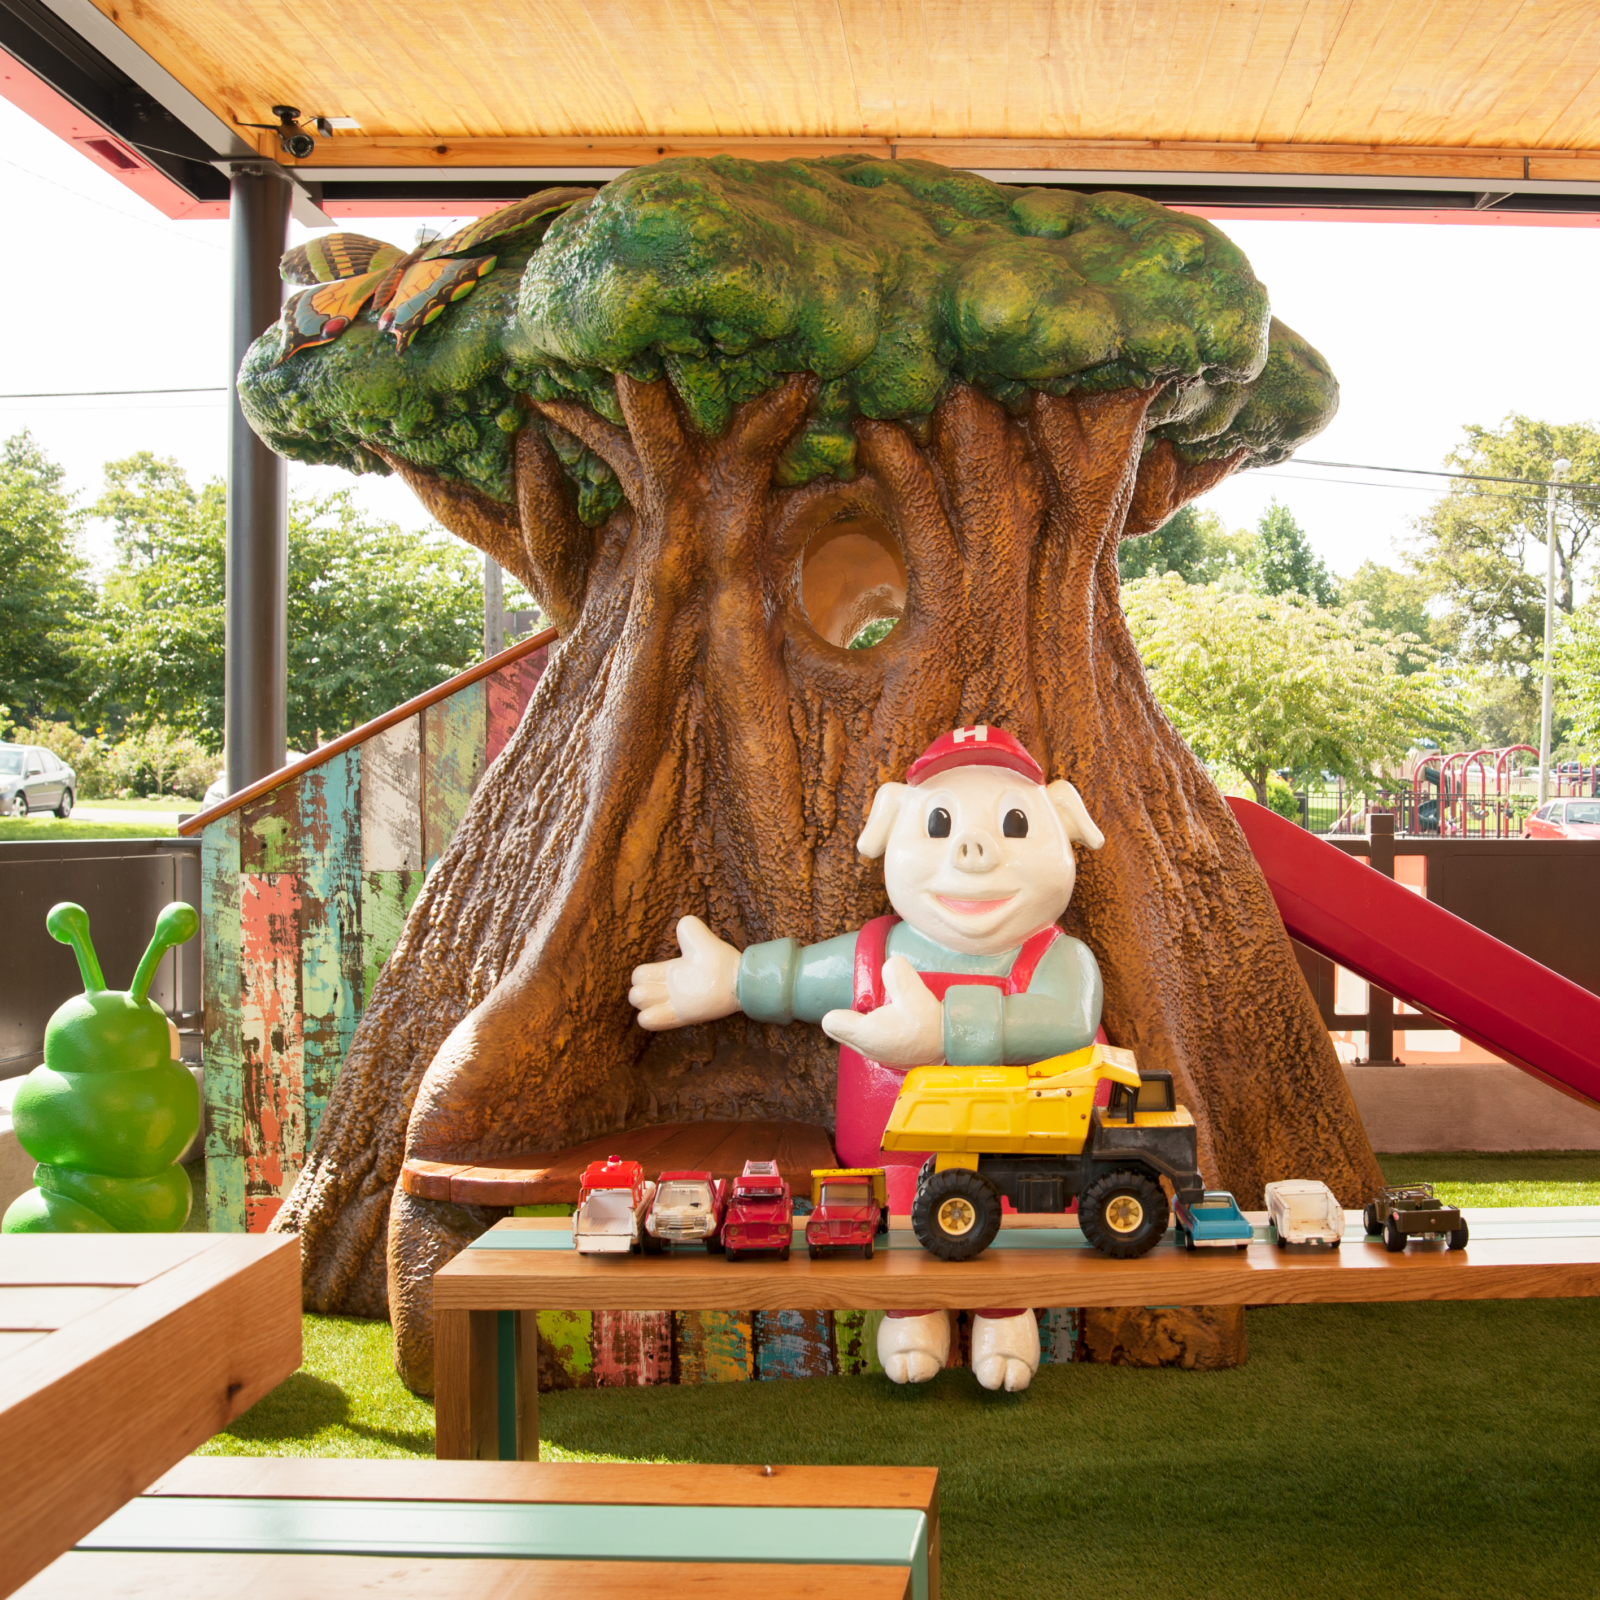 The child's play-set tree on the patio at Hugh Baby's/